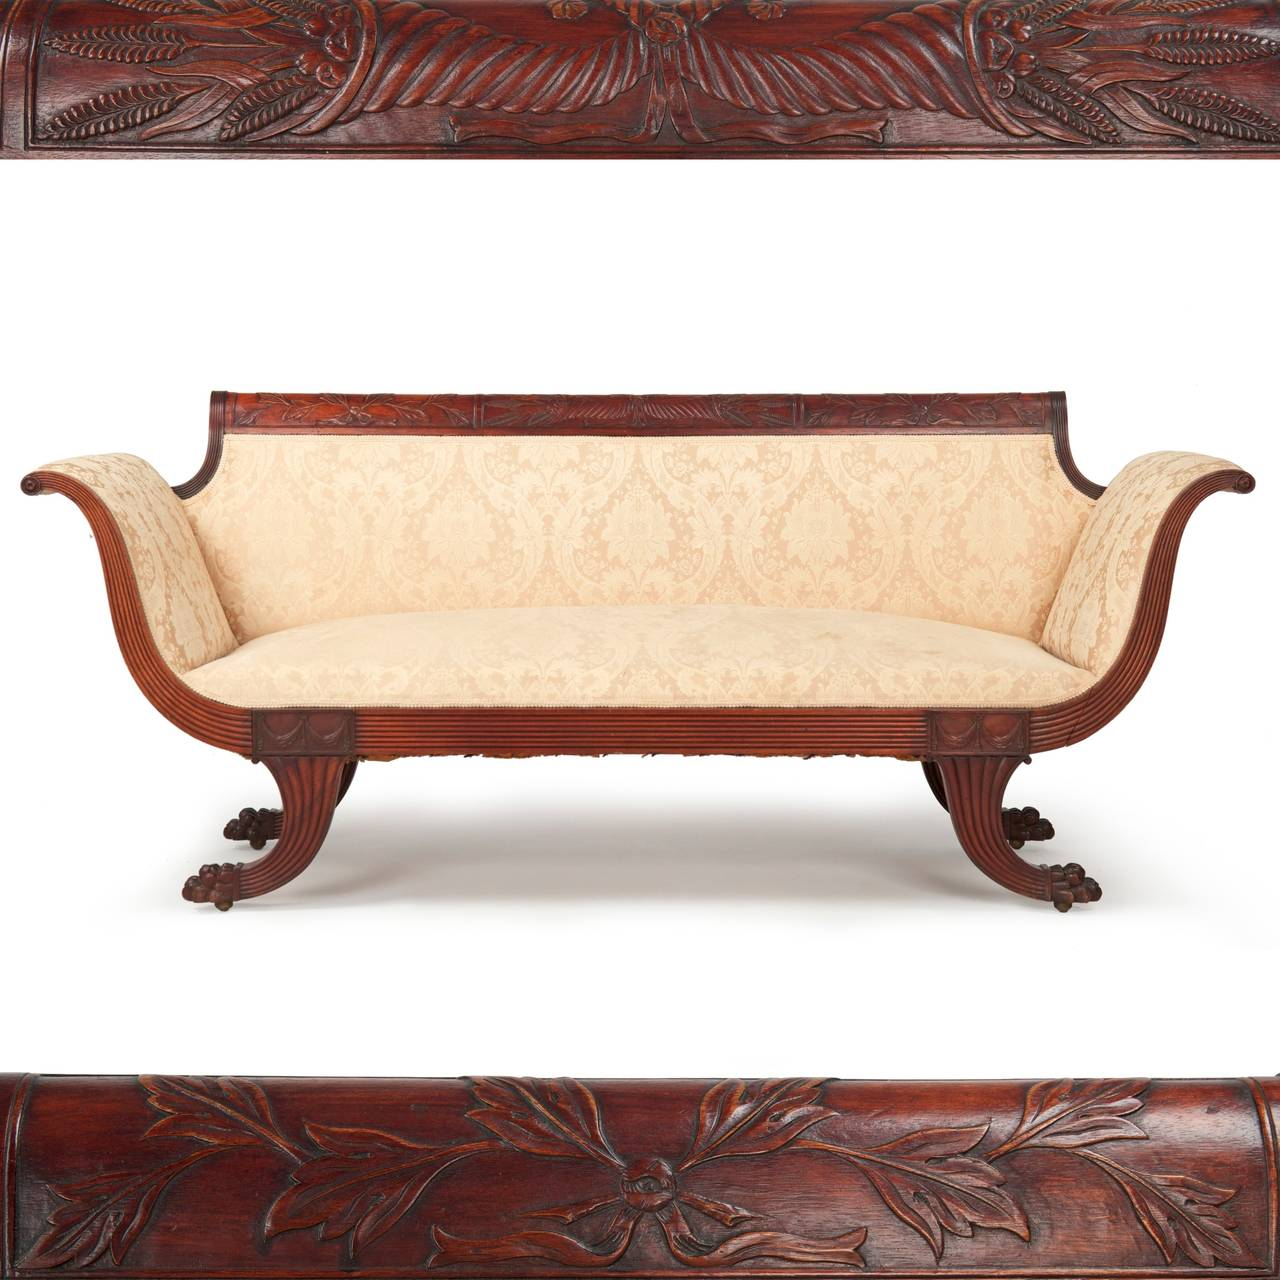 85 Furniture Antique And Classic Style By Duncan Phyfe